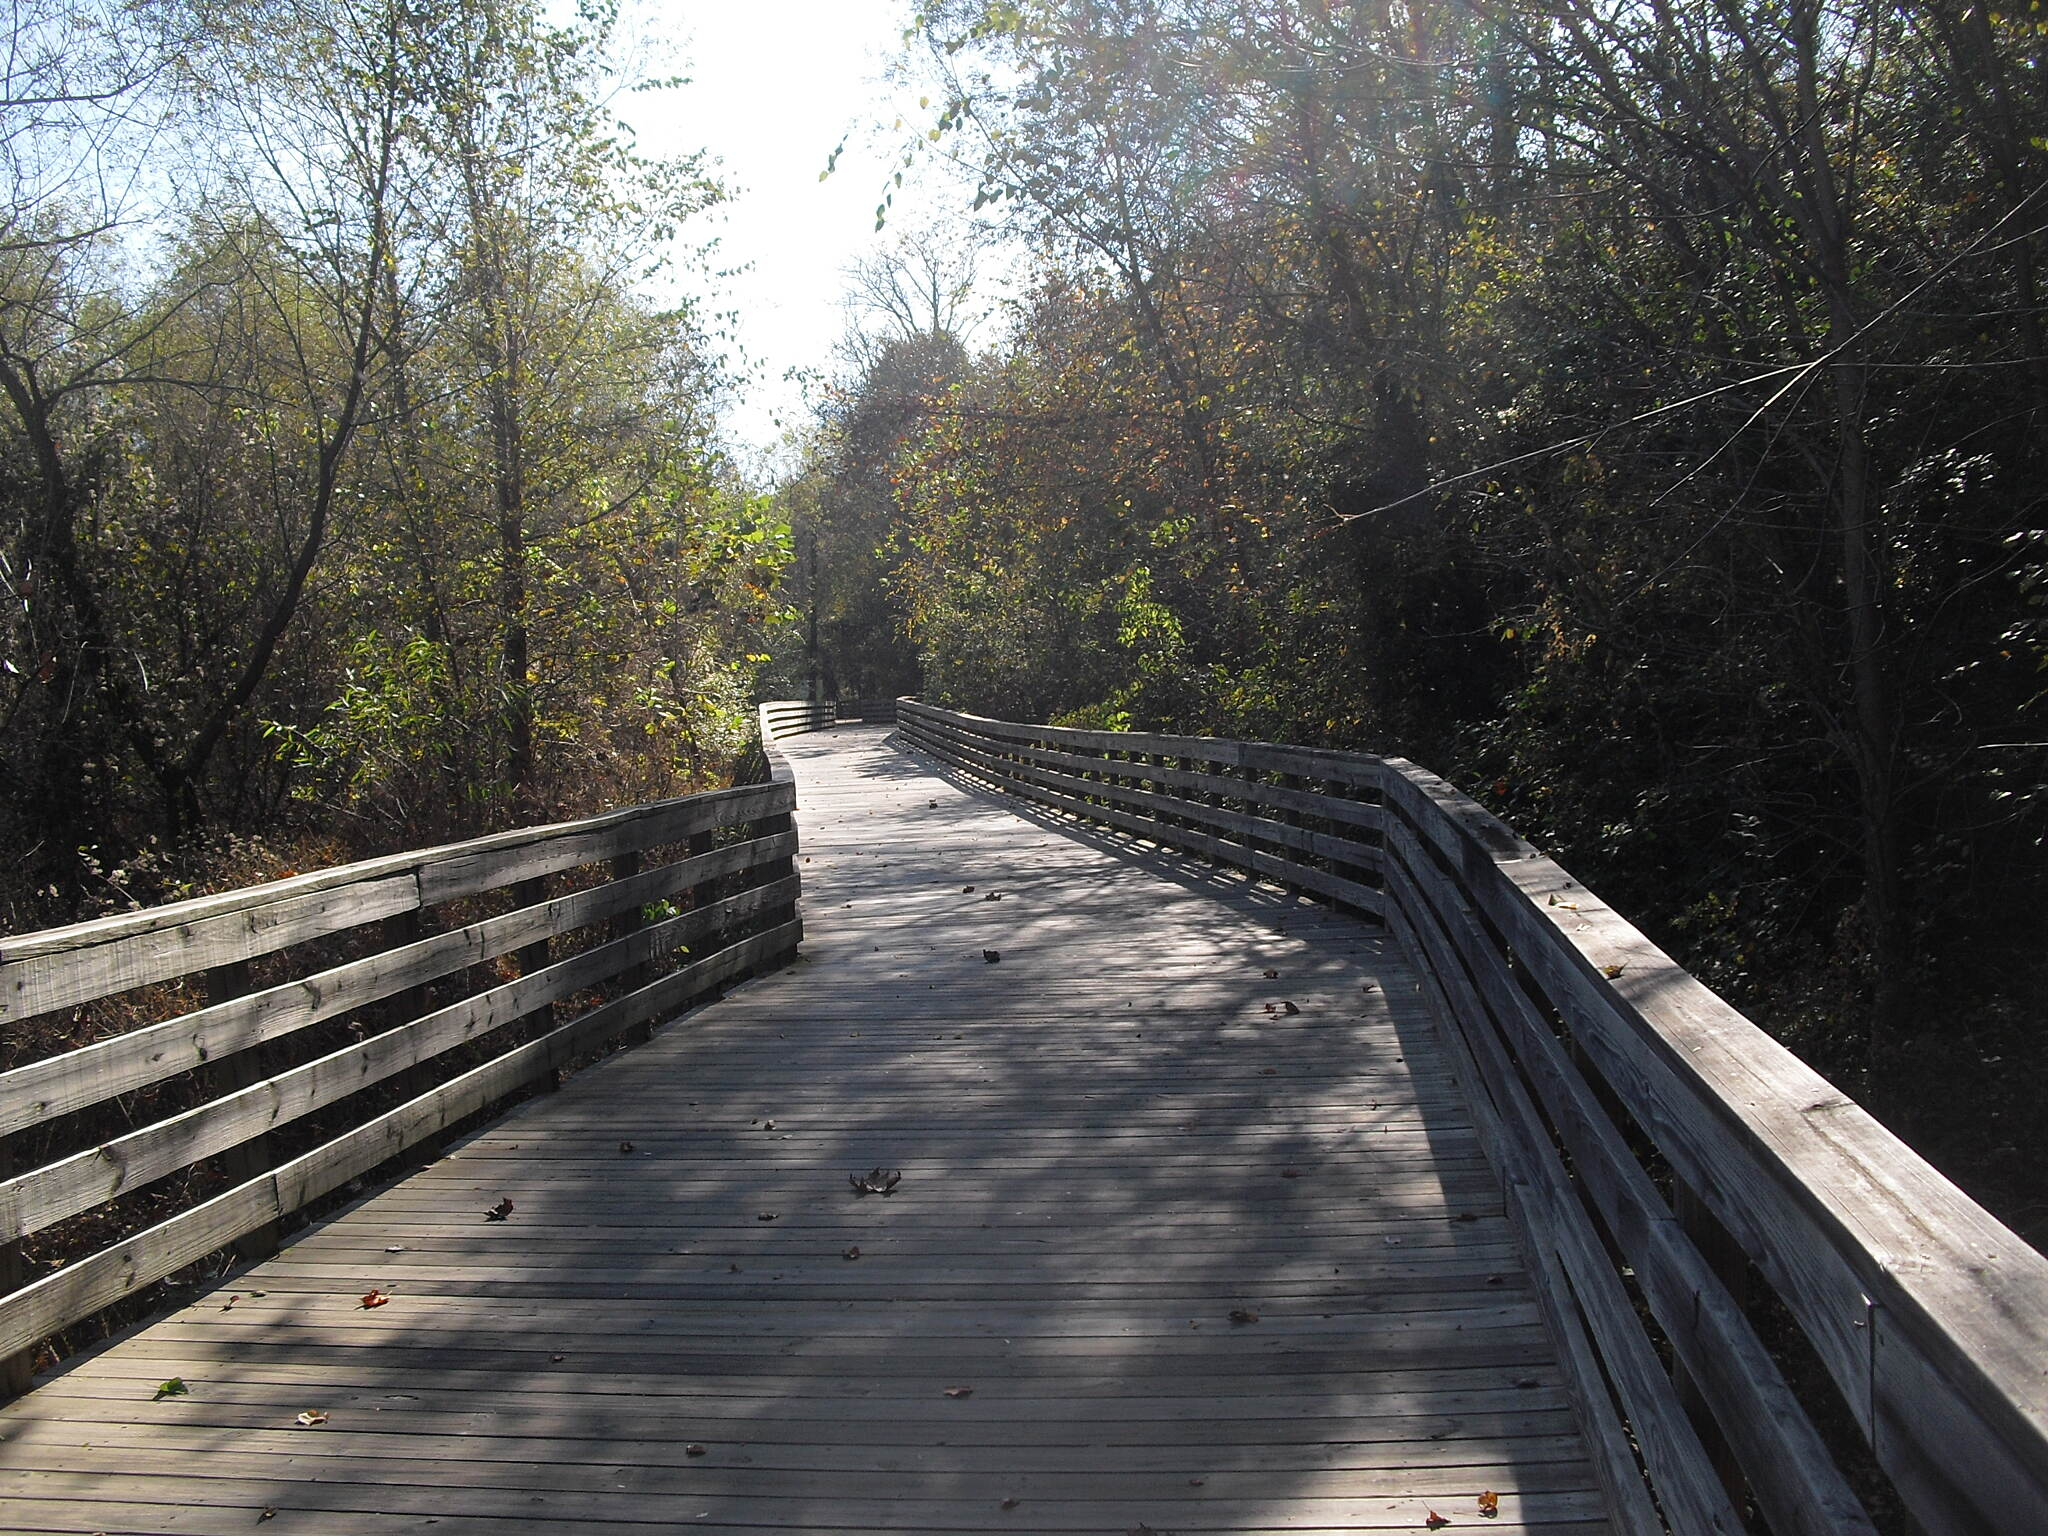 Big Creek Greenway Big Creek Greenway boardwalk Long boardwalk near Old Alabama Rd. trailhead.